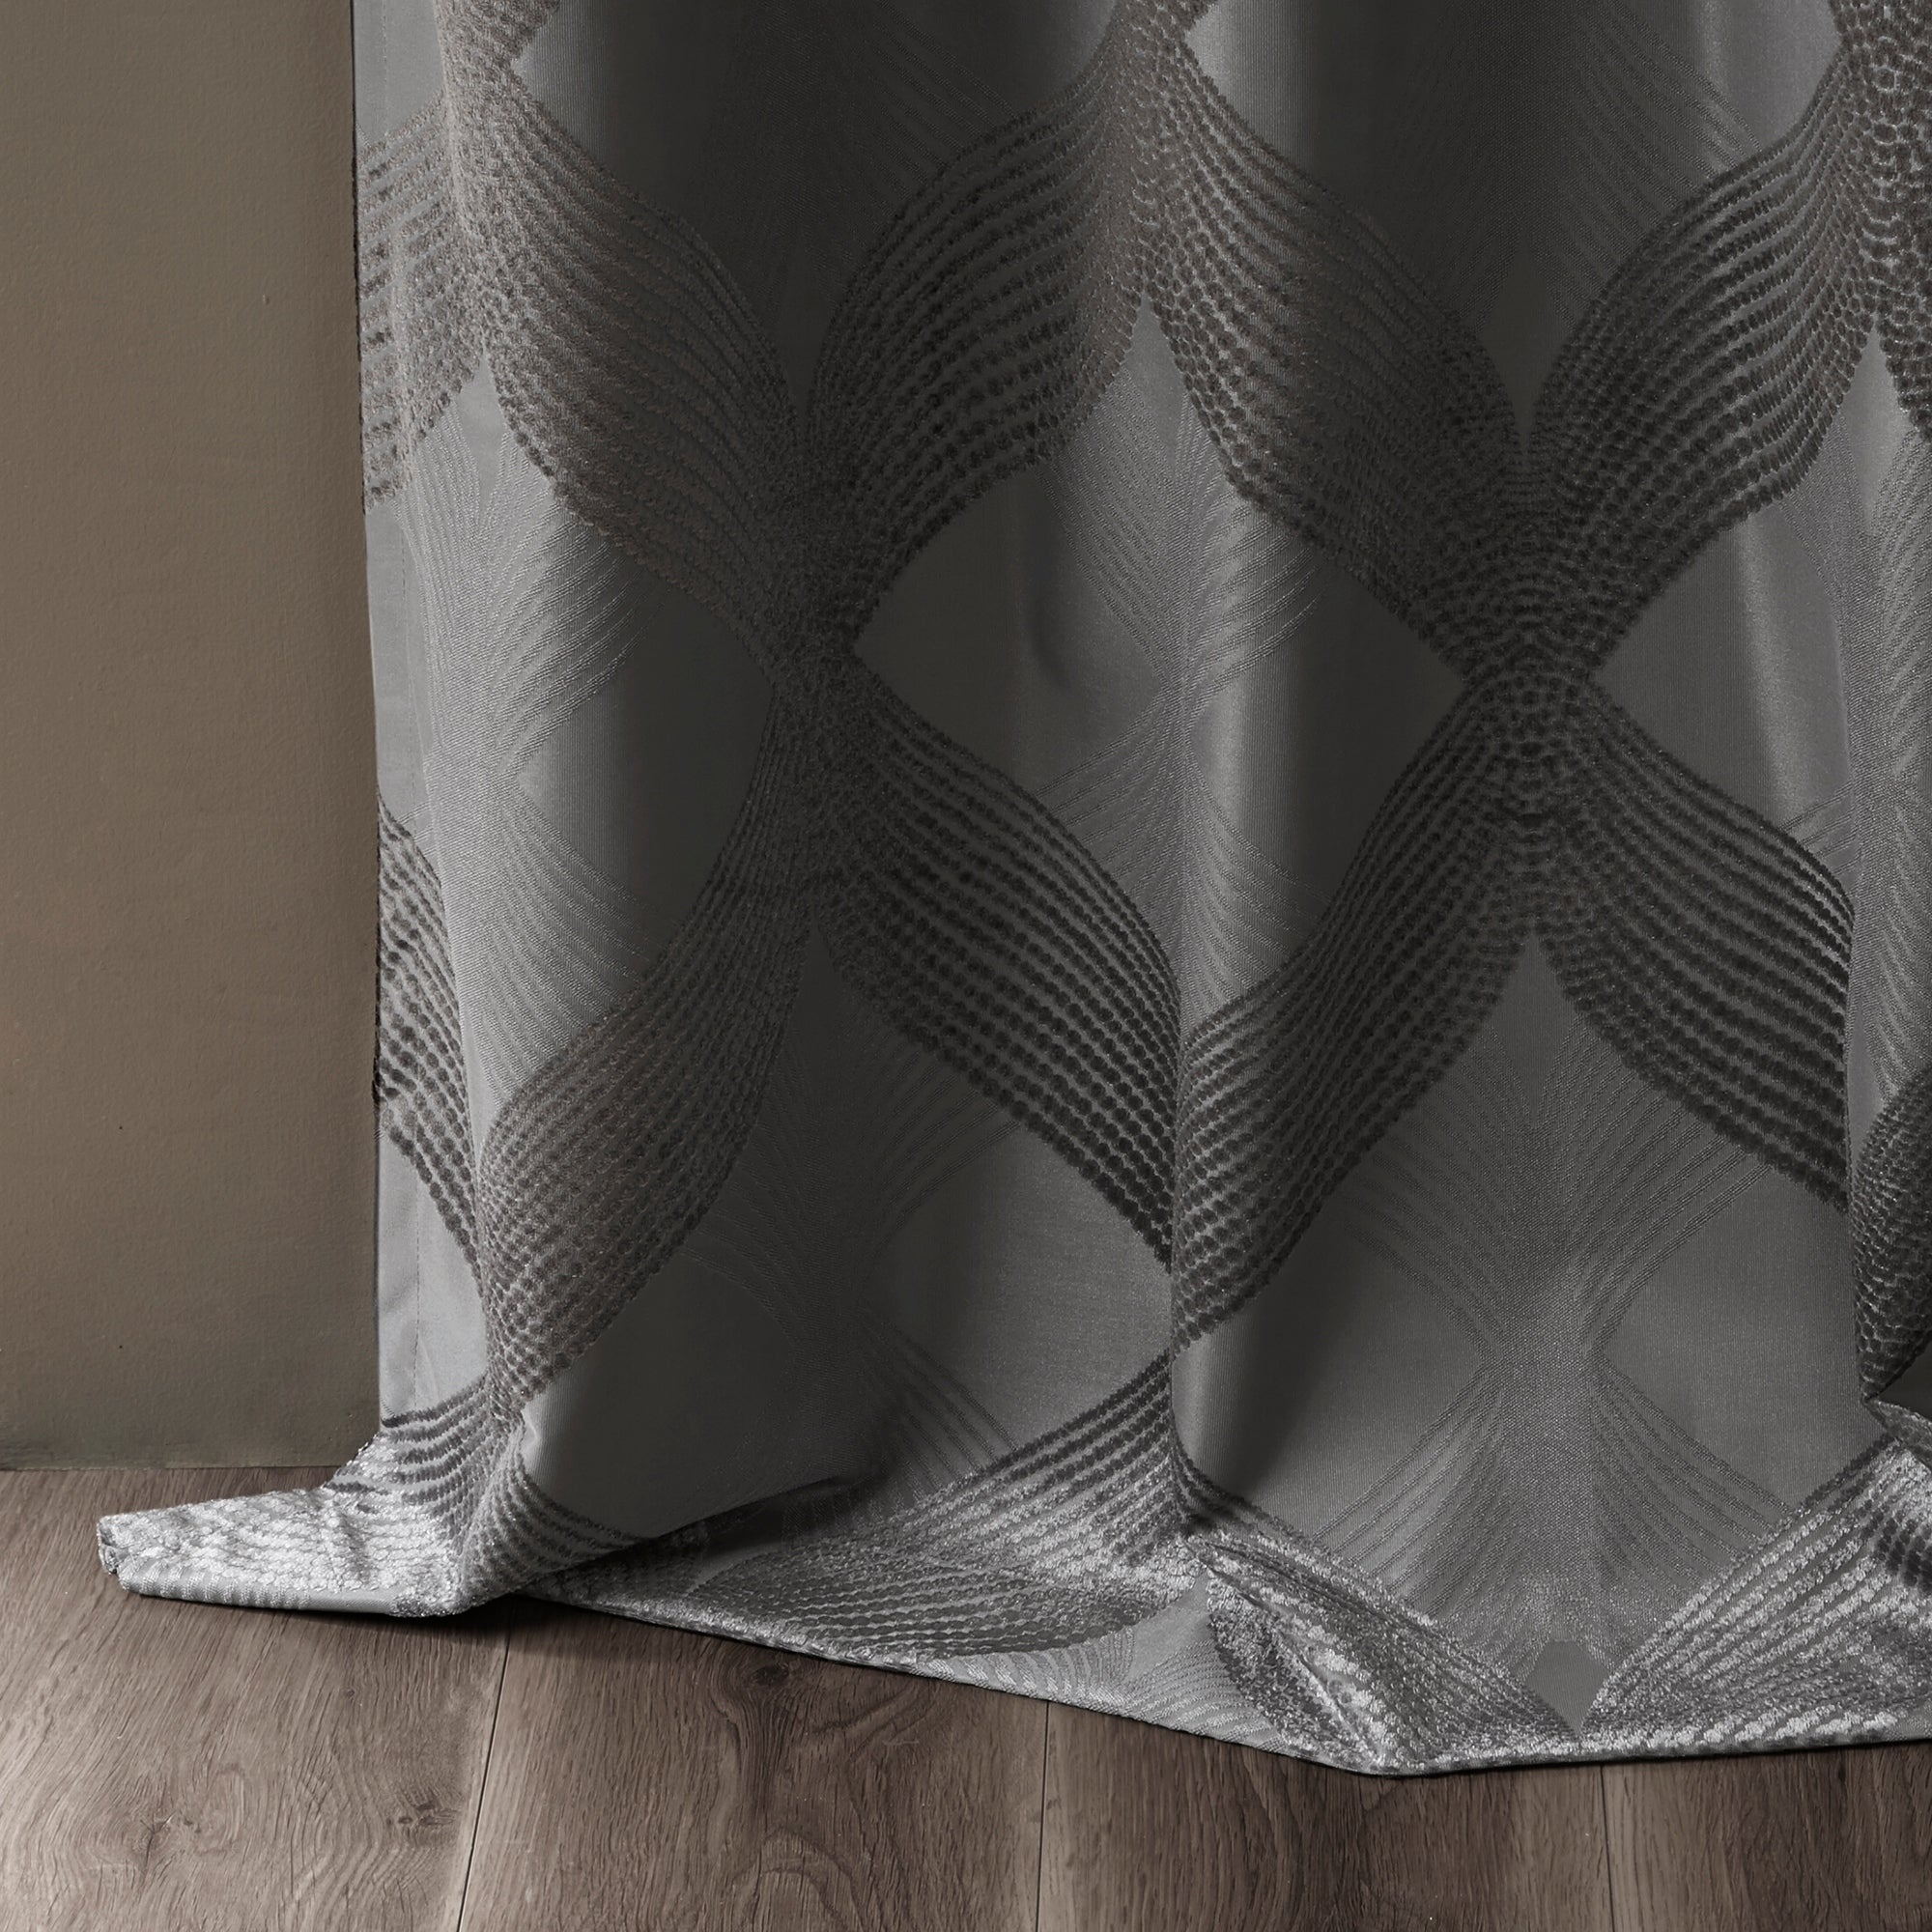 Sunsmart Abel Ogee Knitted Jacquard Total Blackout Curtain Panel With Regard To Sunsmart Abel Ogee Knitted Jacquard Total Blackout Curtain Panels (View 21 of 30)